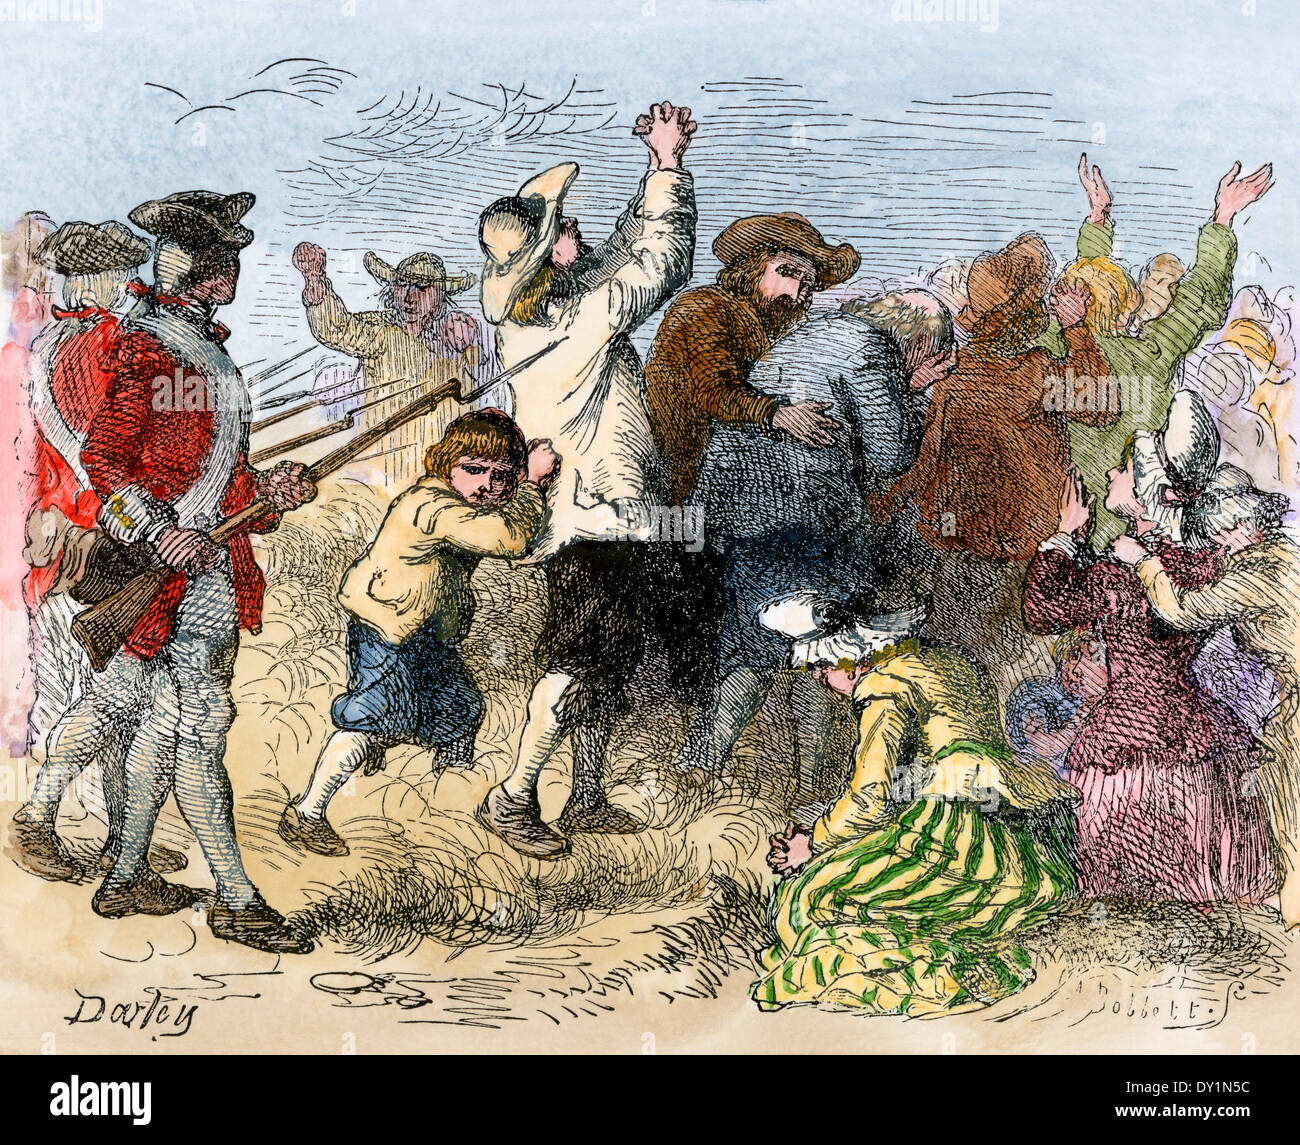 Acadians driven into exile by the British, 1750s. Hand-colored woodcut - Stock Image